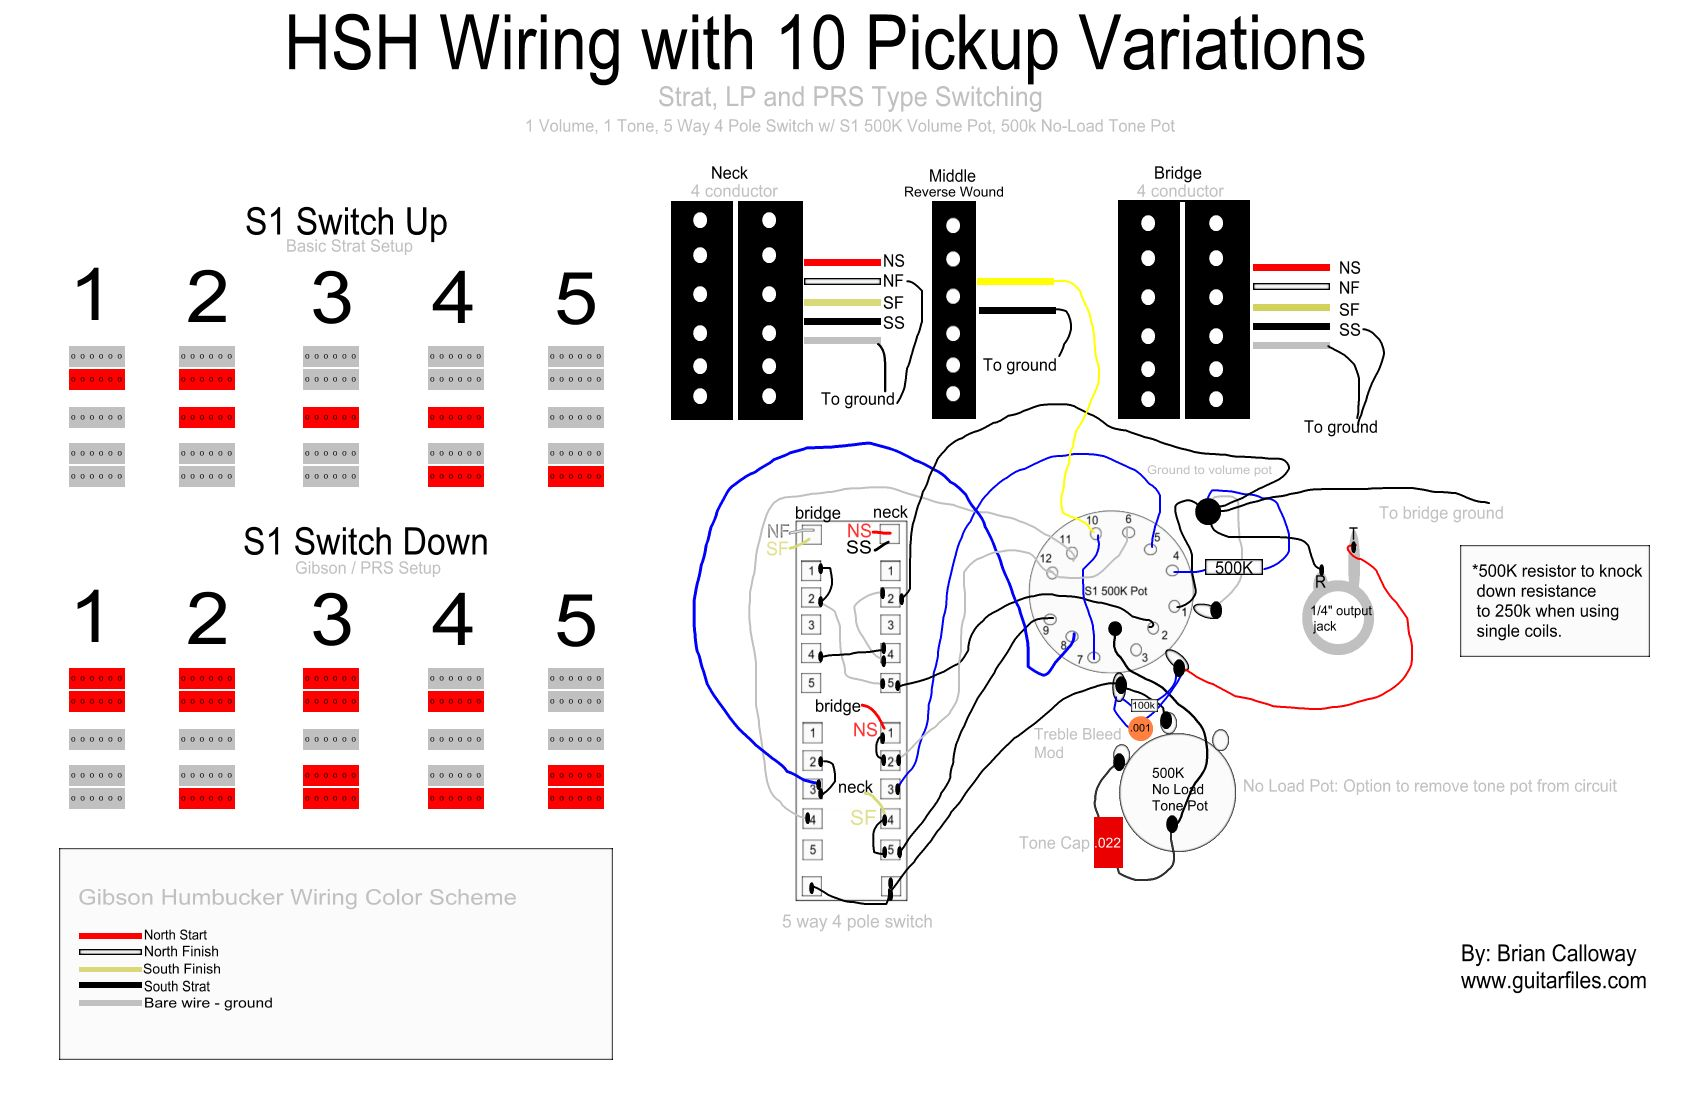 Guitar Hero Wiring Diagram : Hsh guitar wiring pickup combinations pole switch